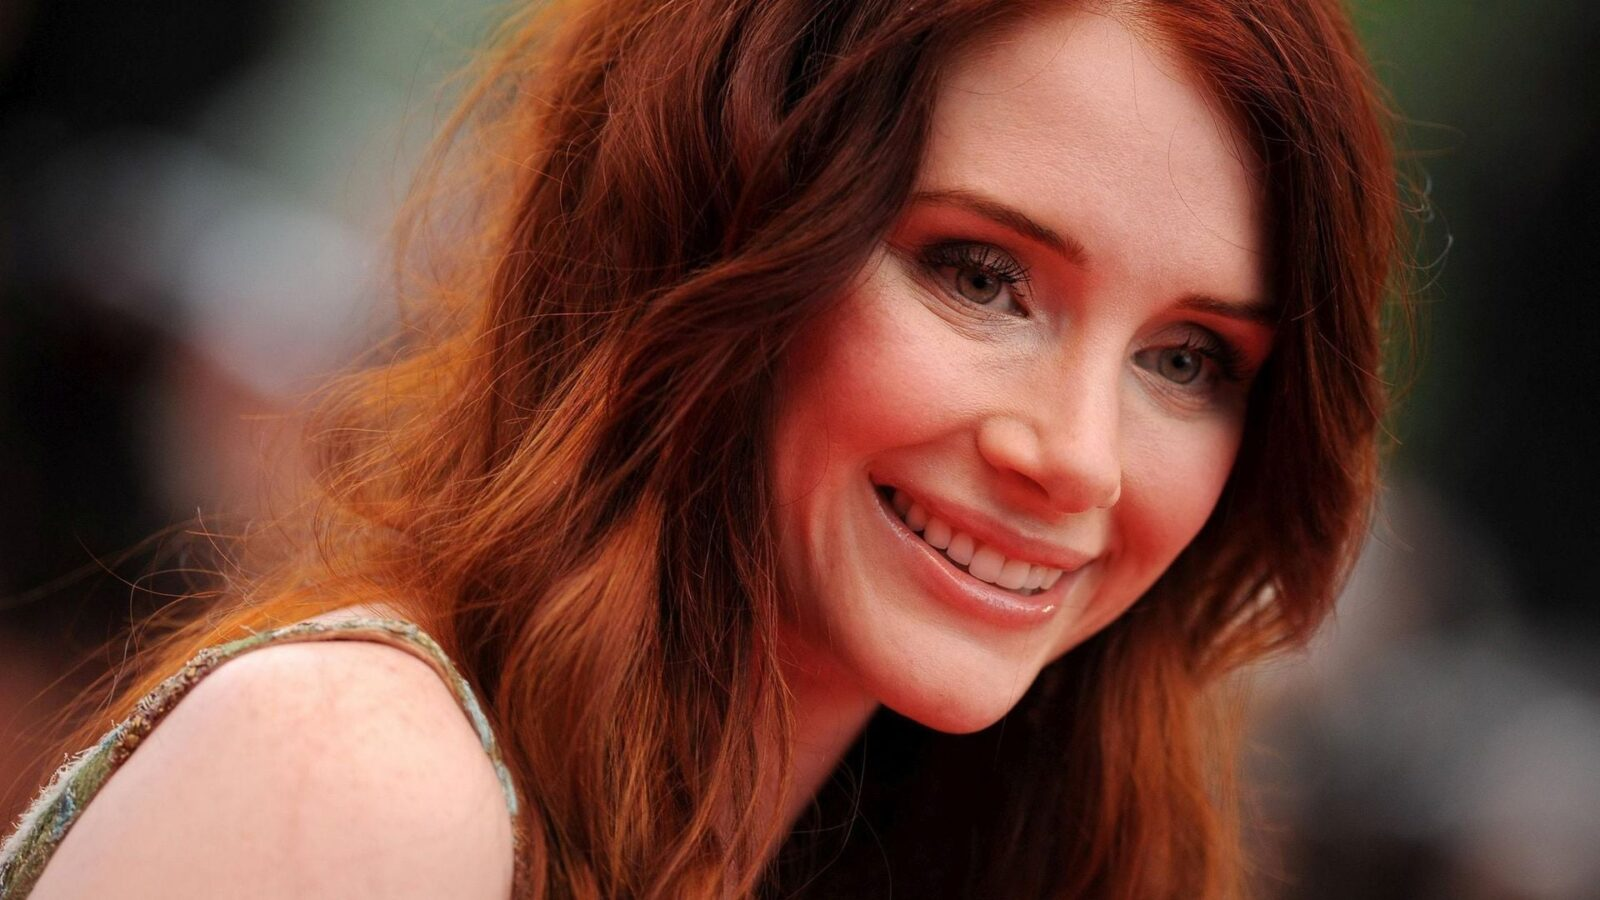 photo of Smile of Bryce Dallas Howard